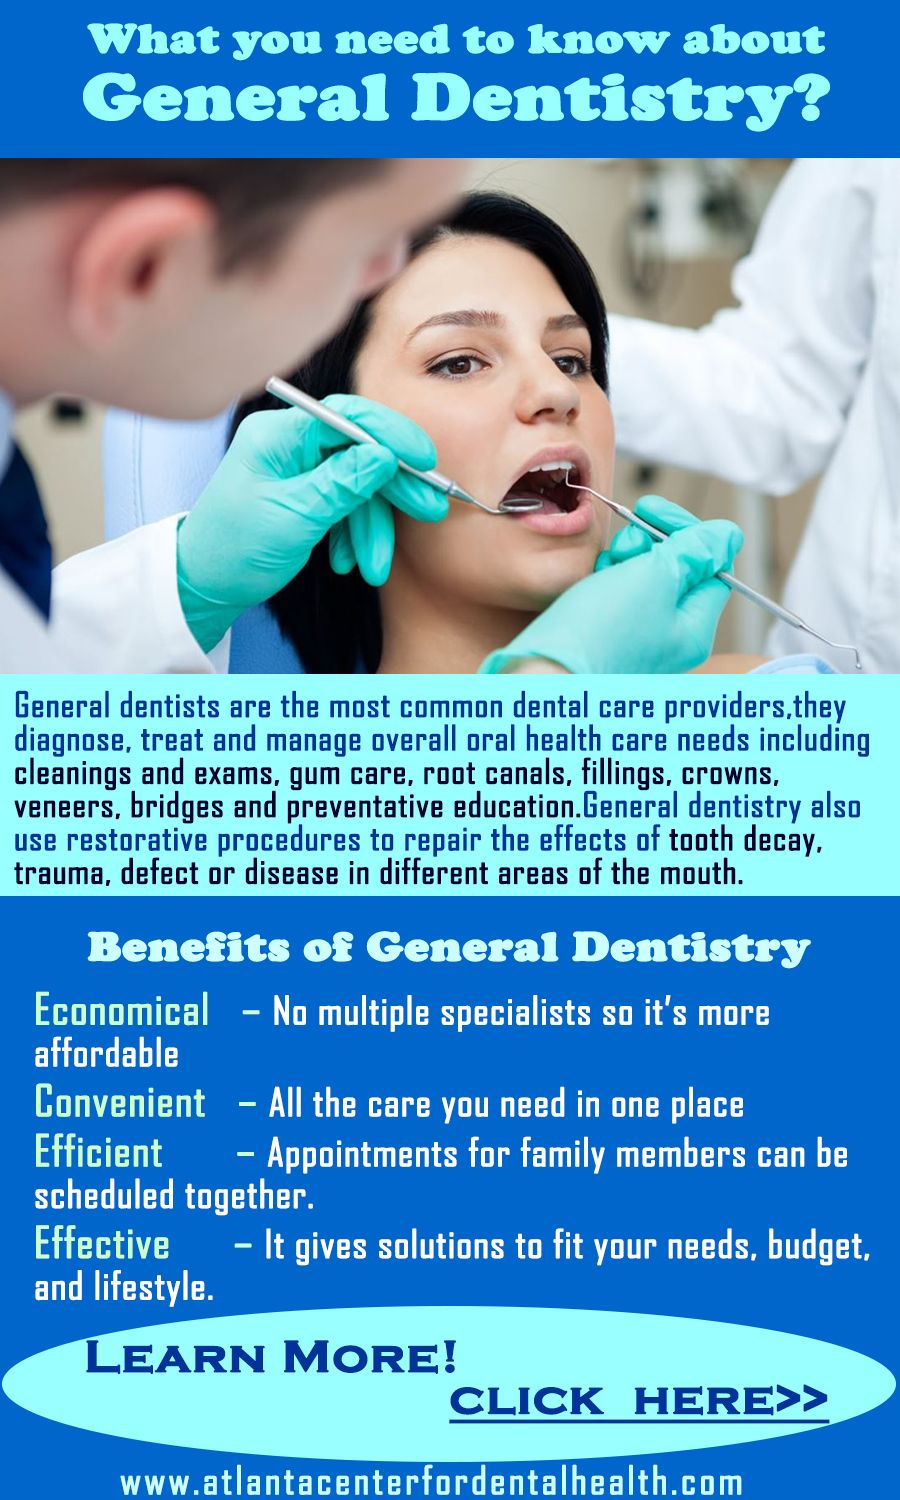 General Dentistry Alpharetta - Dr. Hepler and his experienced team